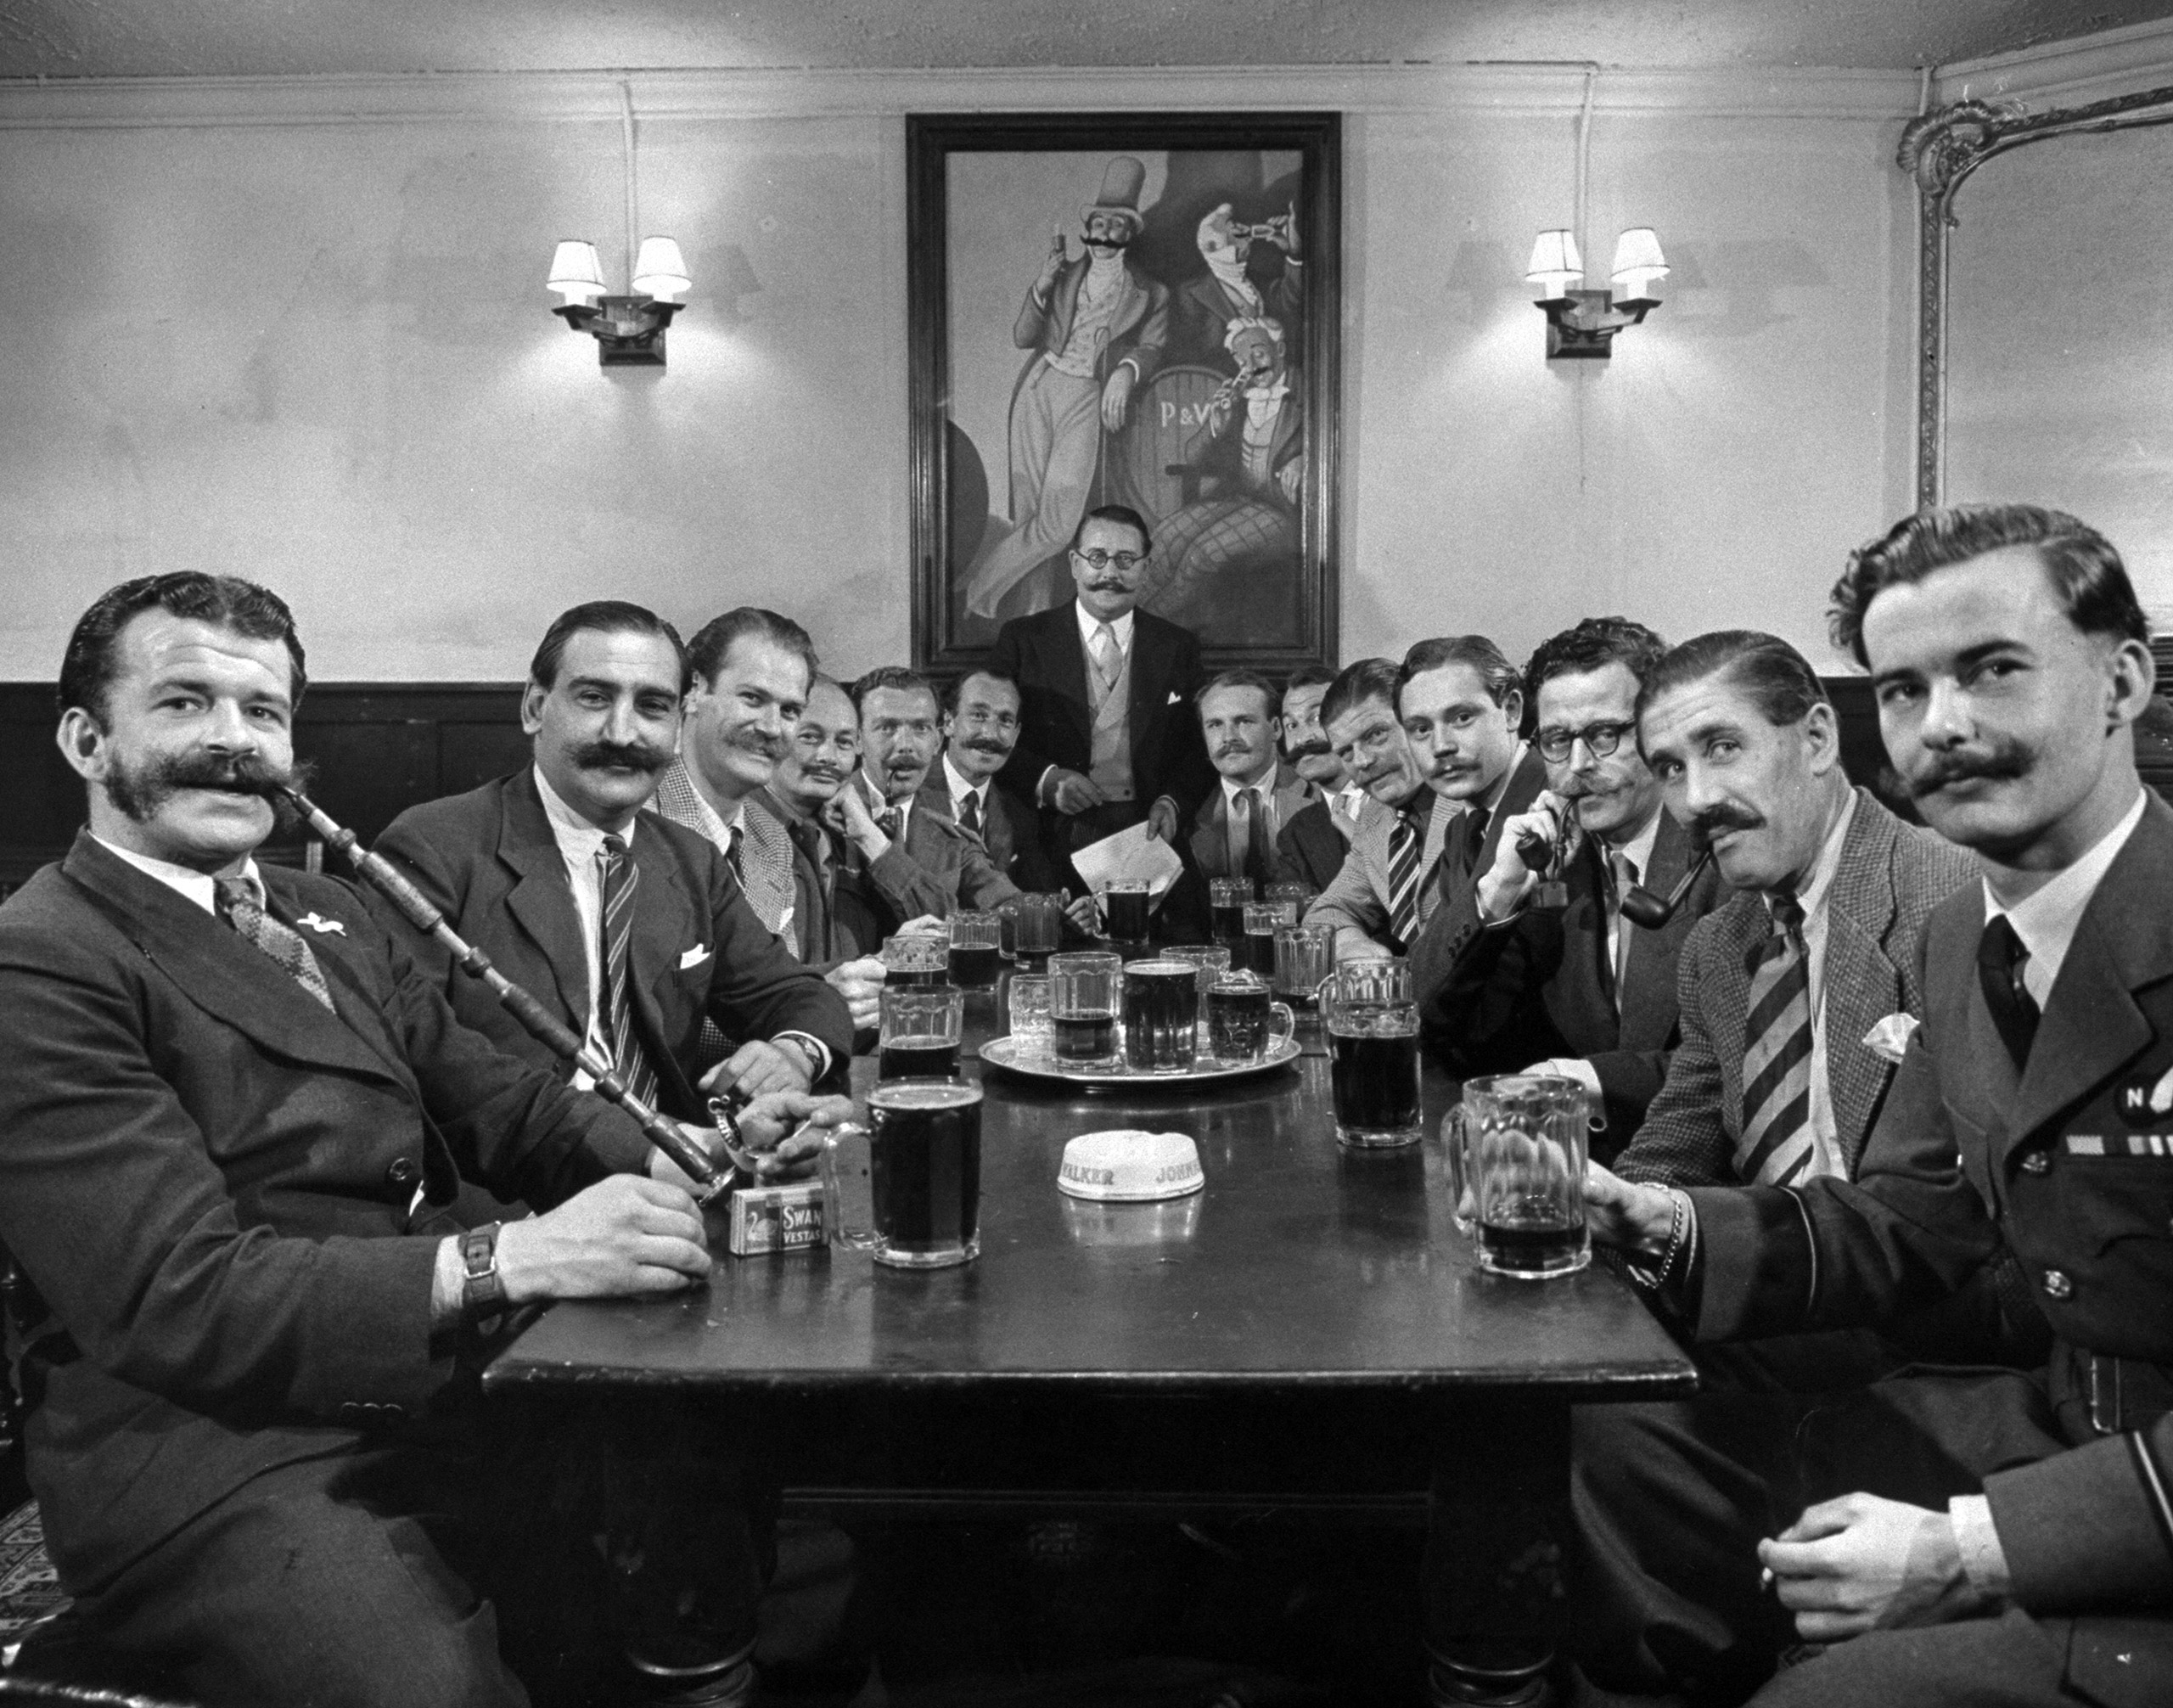 Members of the London Handlebar Club, 1947.